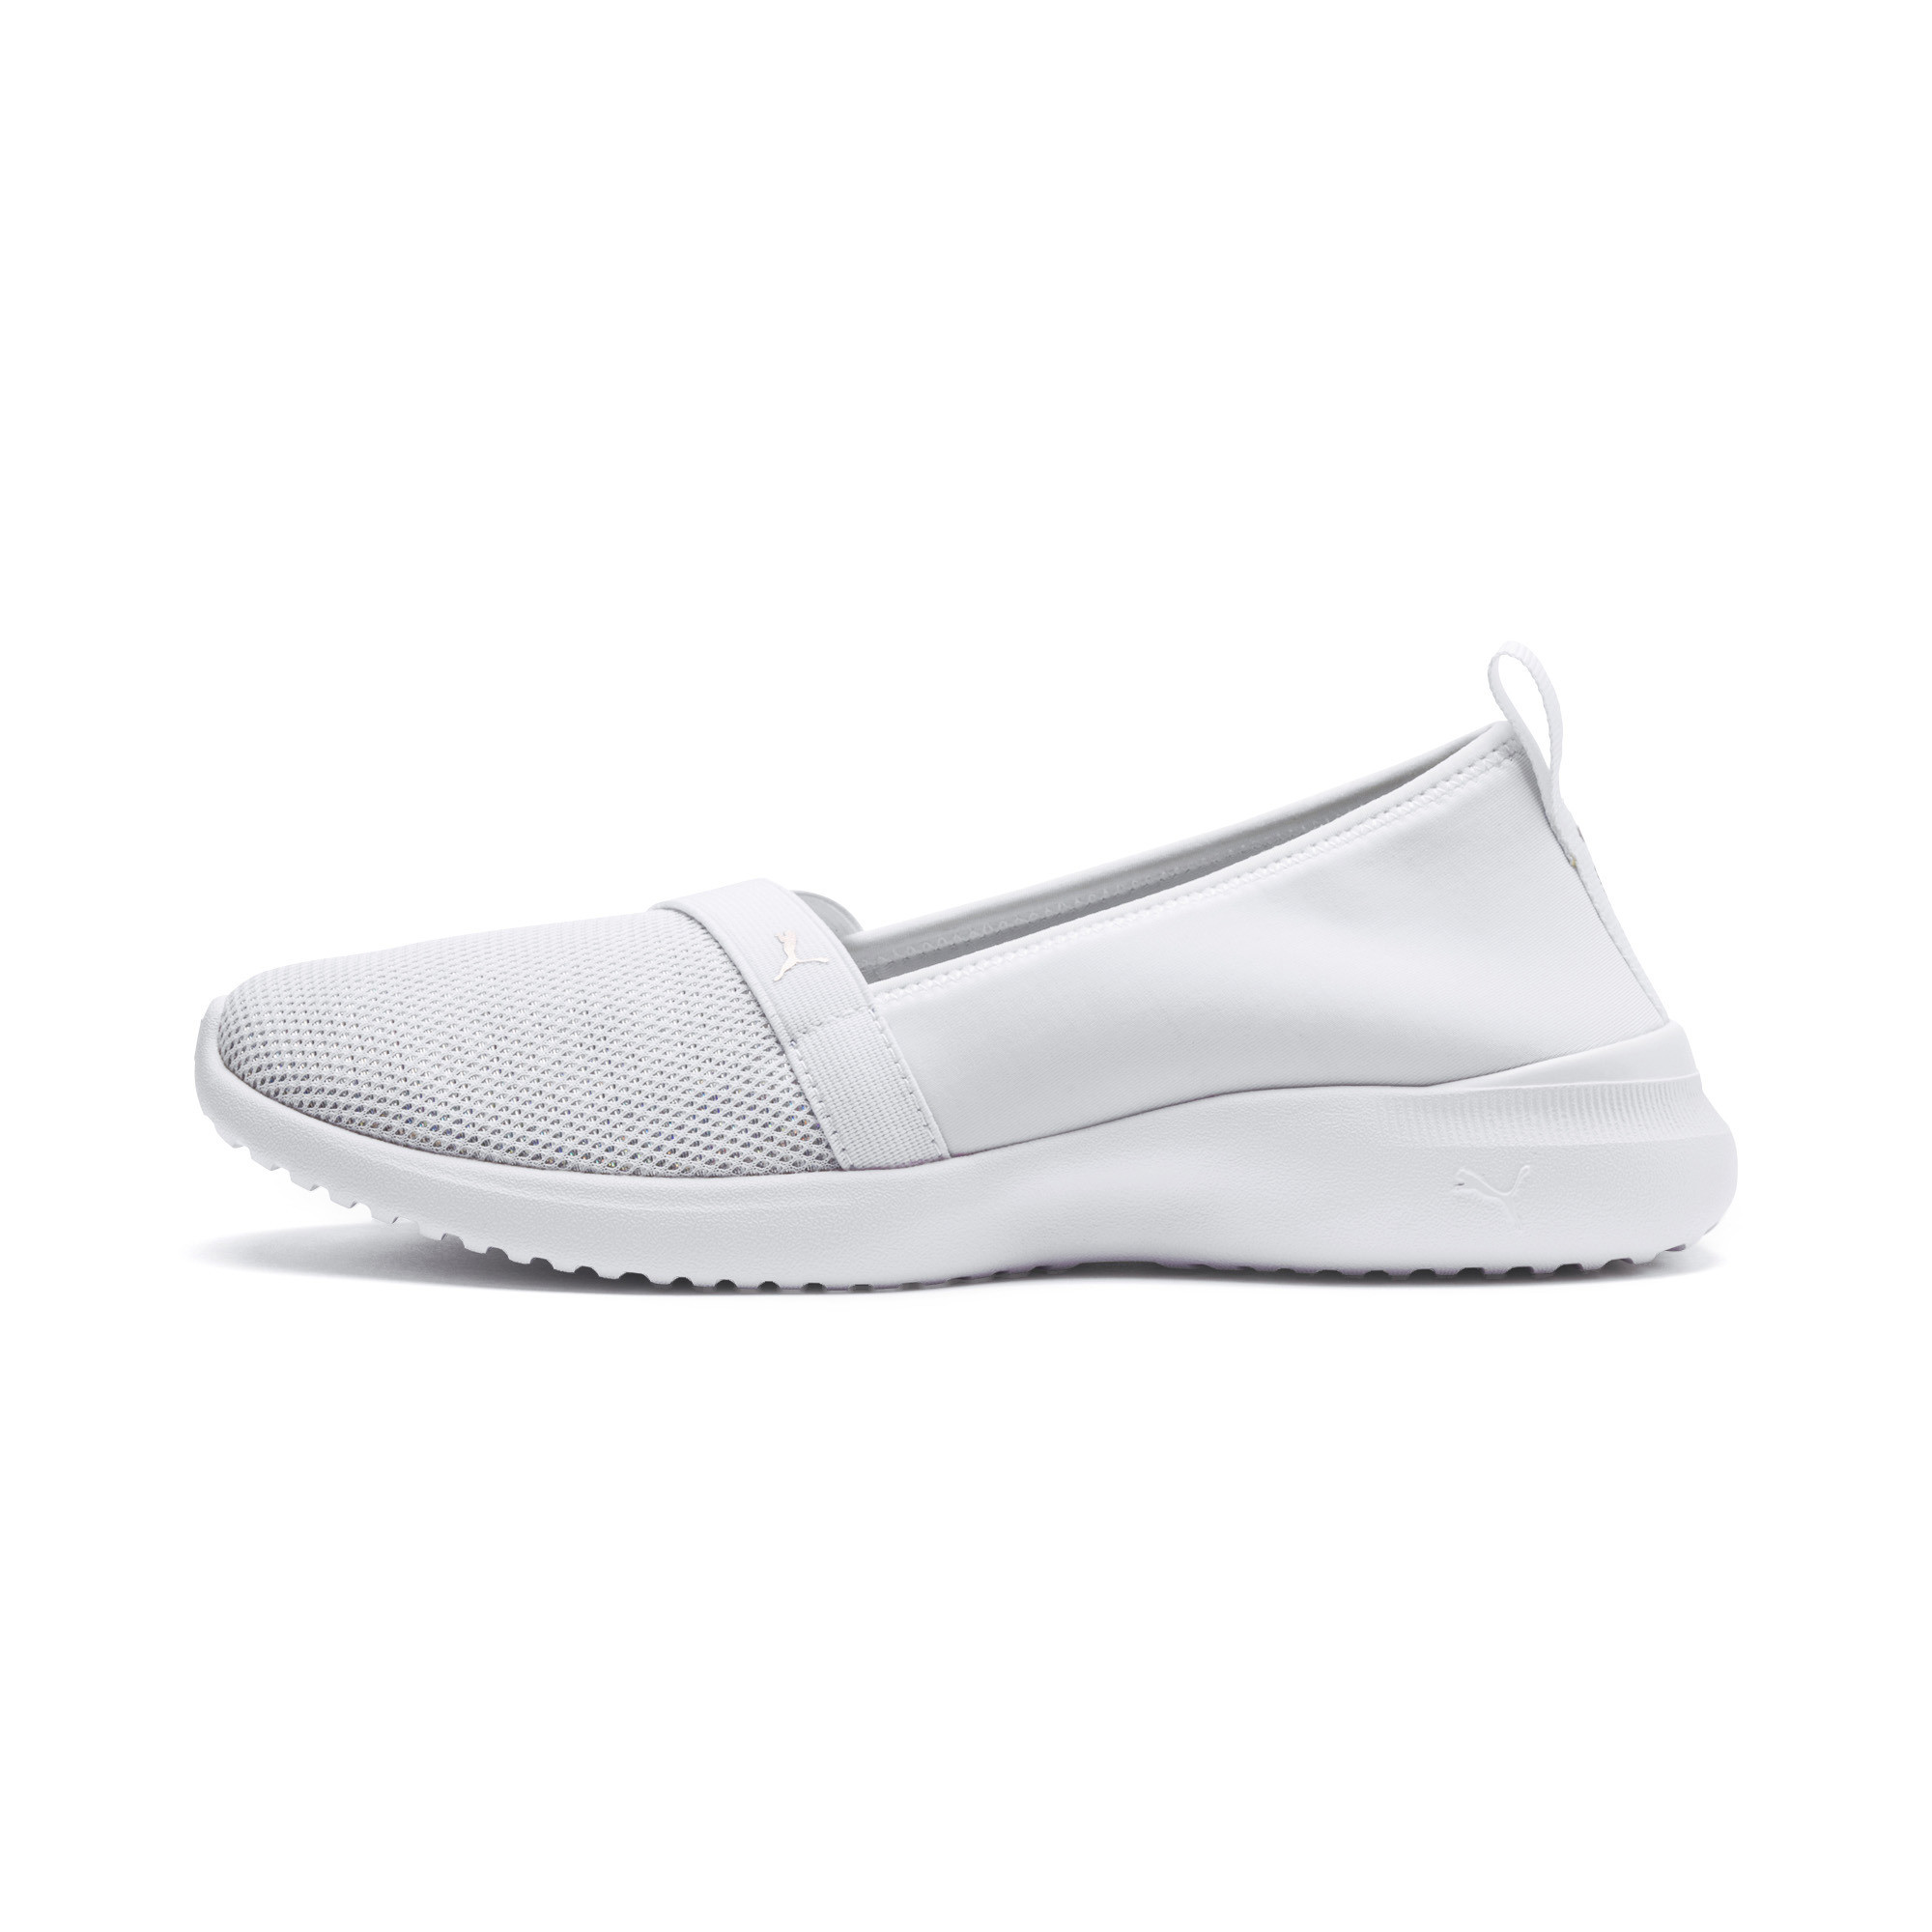 PUMA-Adelina-Sparkle-Women-s-Ballet-Shoes-Women-Shoe-Basics thumbnail 13